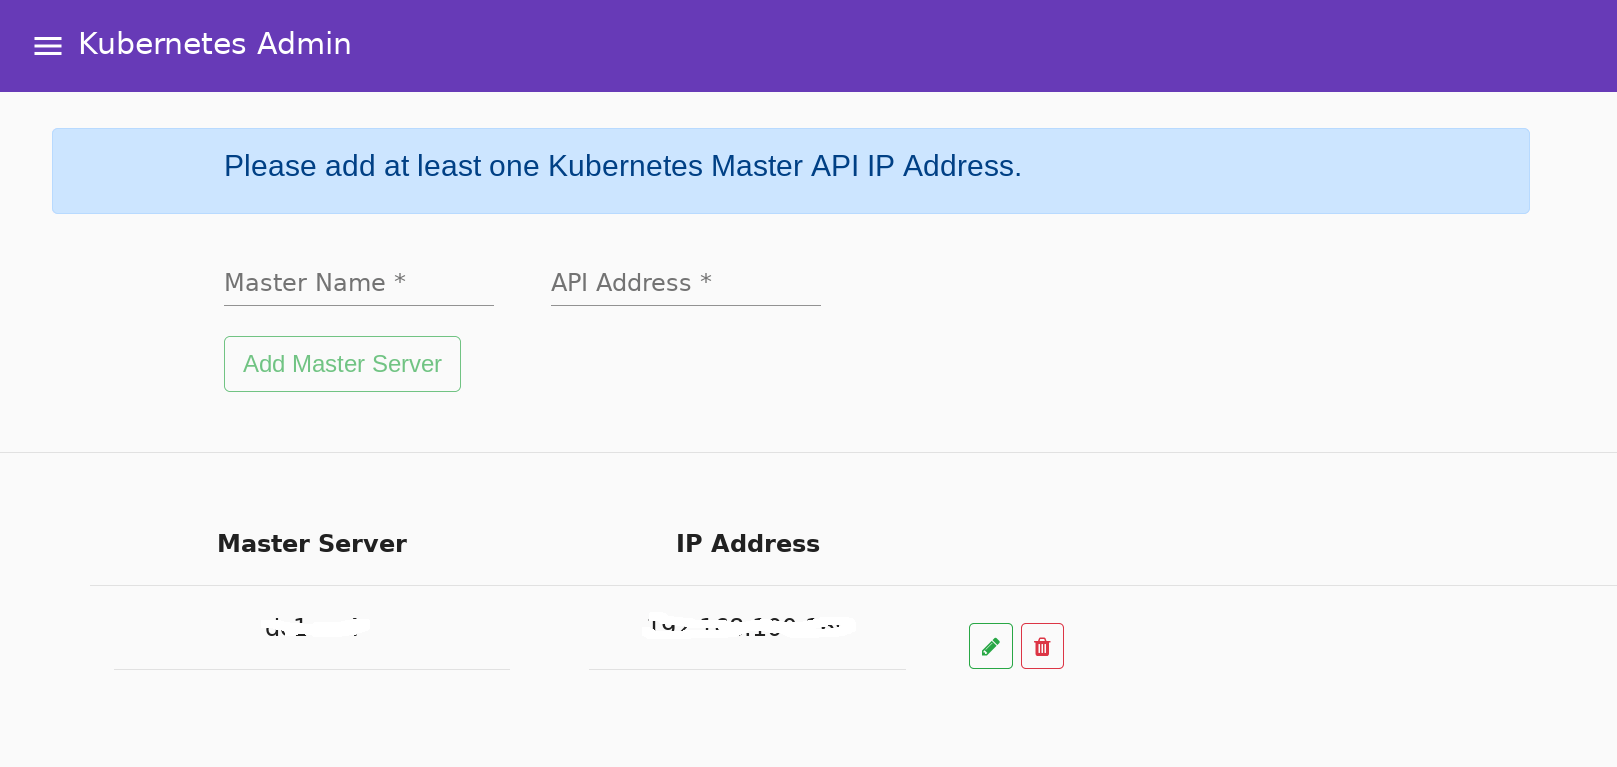 Web GUI/UI - Administrating A Kubernetes Cluster Created